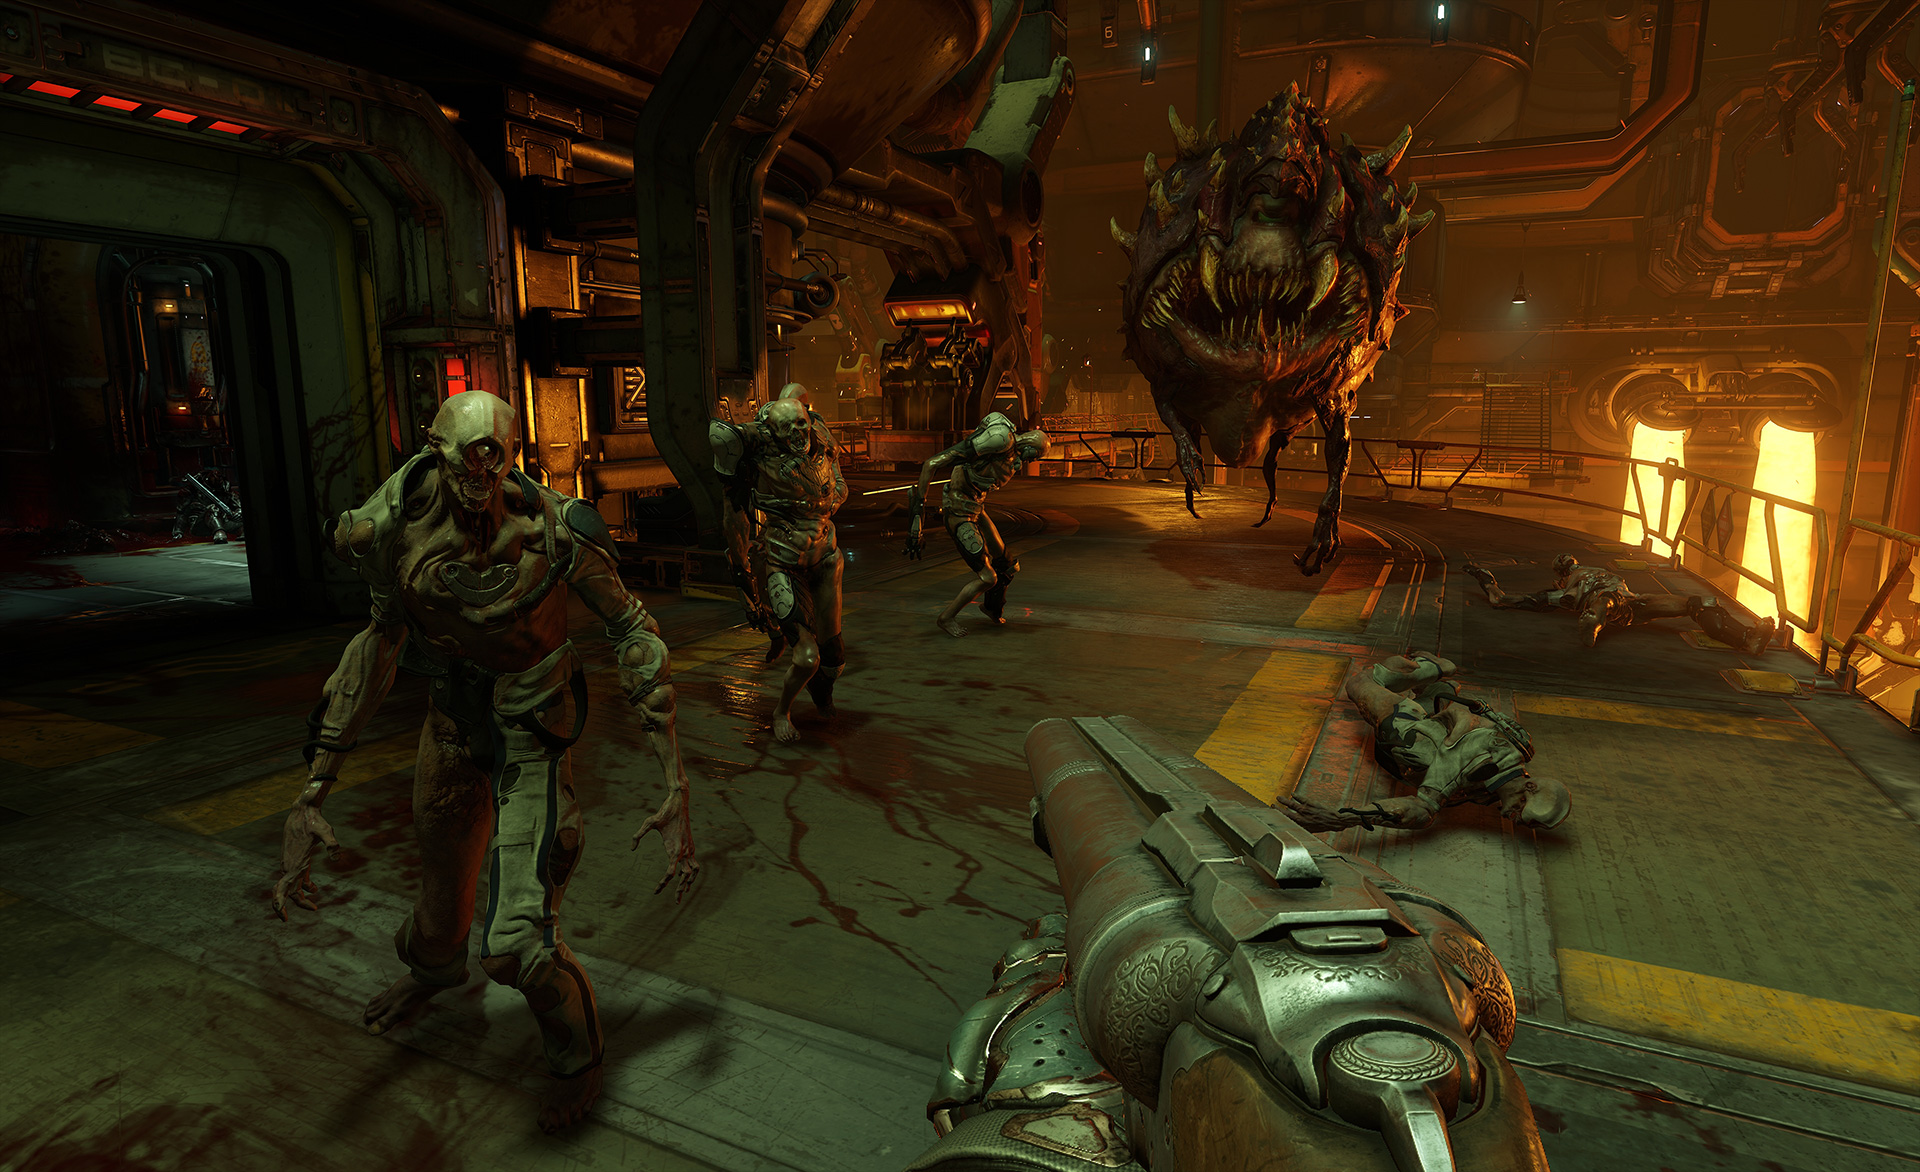 DOOM Hides An Awesome Retro Secret In Every Mission doom unwilling cacodemons screenshot 1920.0